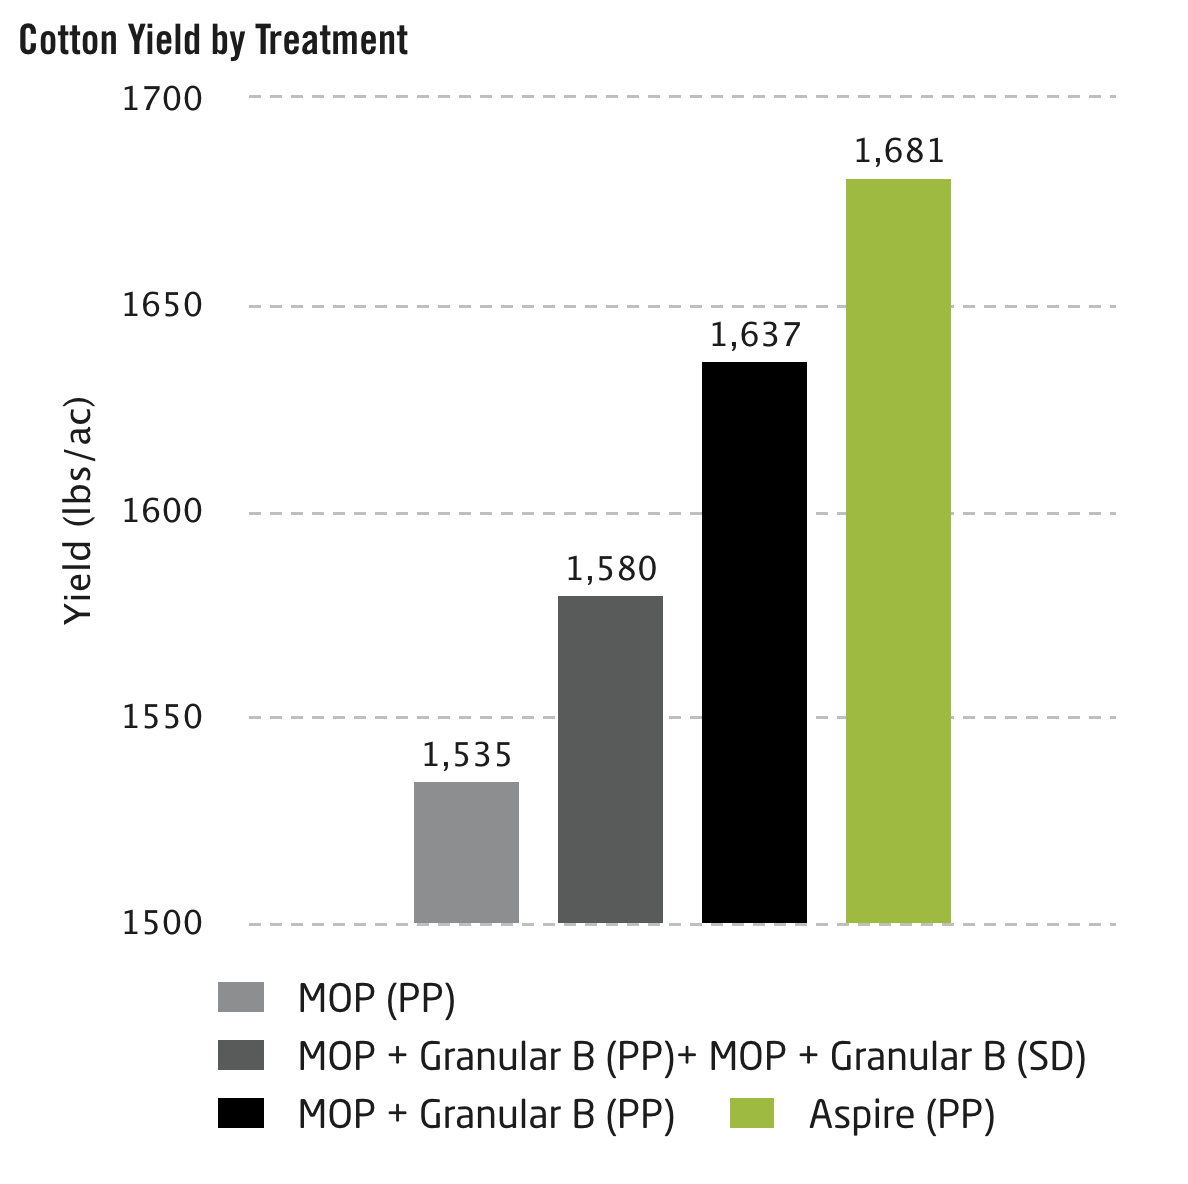 Cotton Yield by Treatment